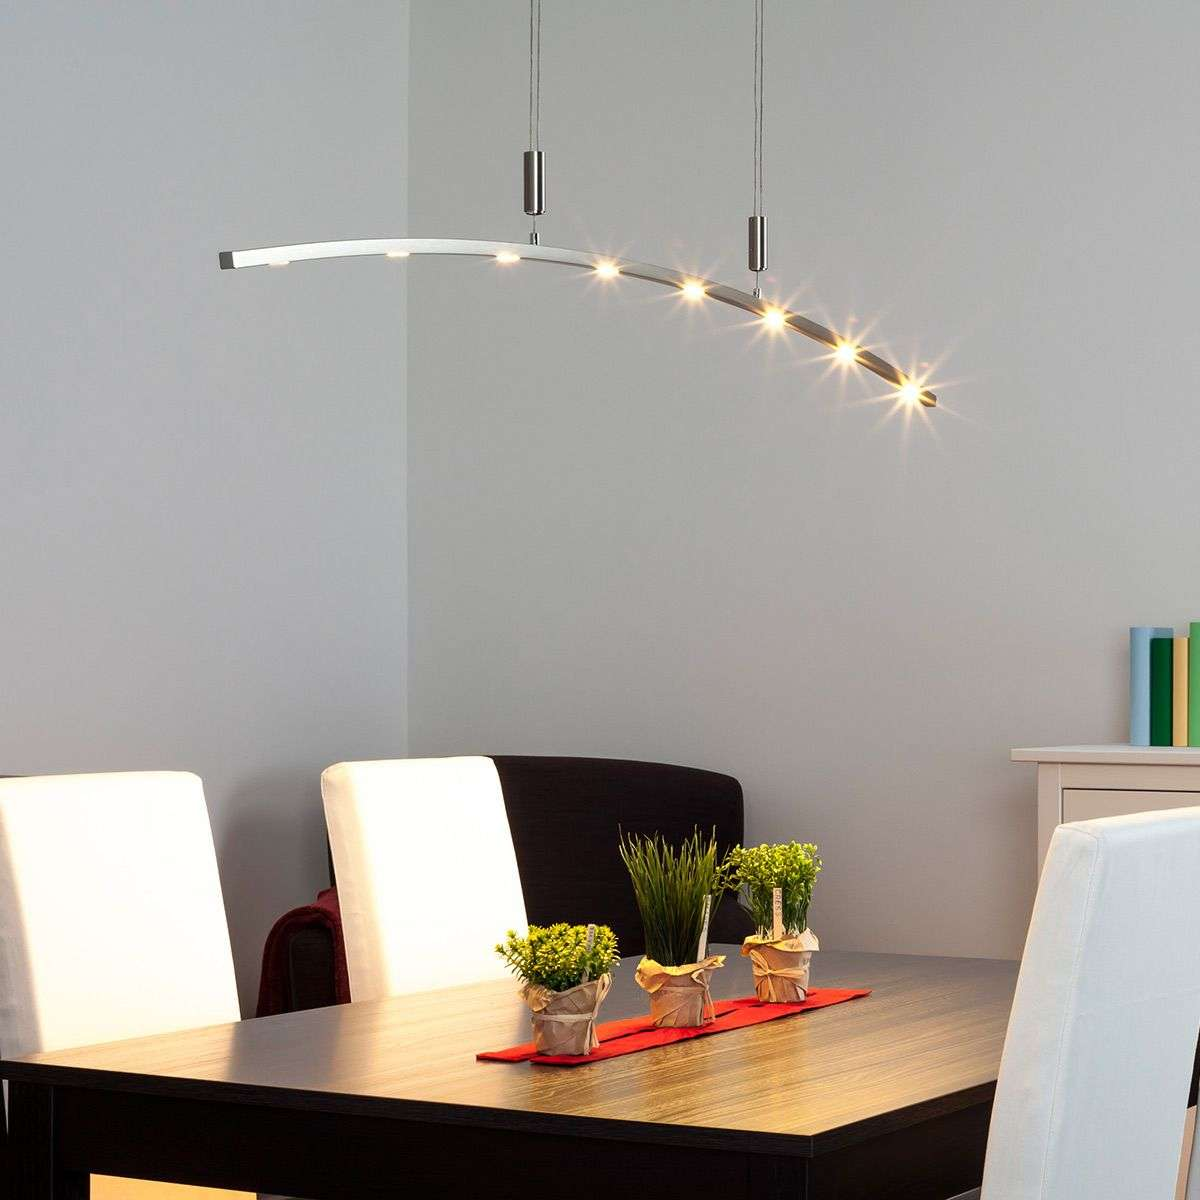 160 Cm Falo LED Pendant Lamp, Height-adjustable